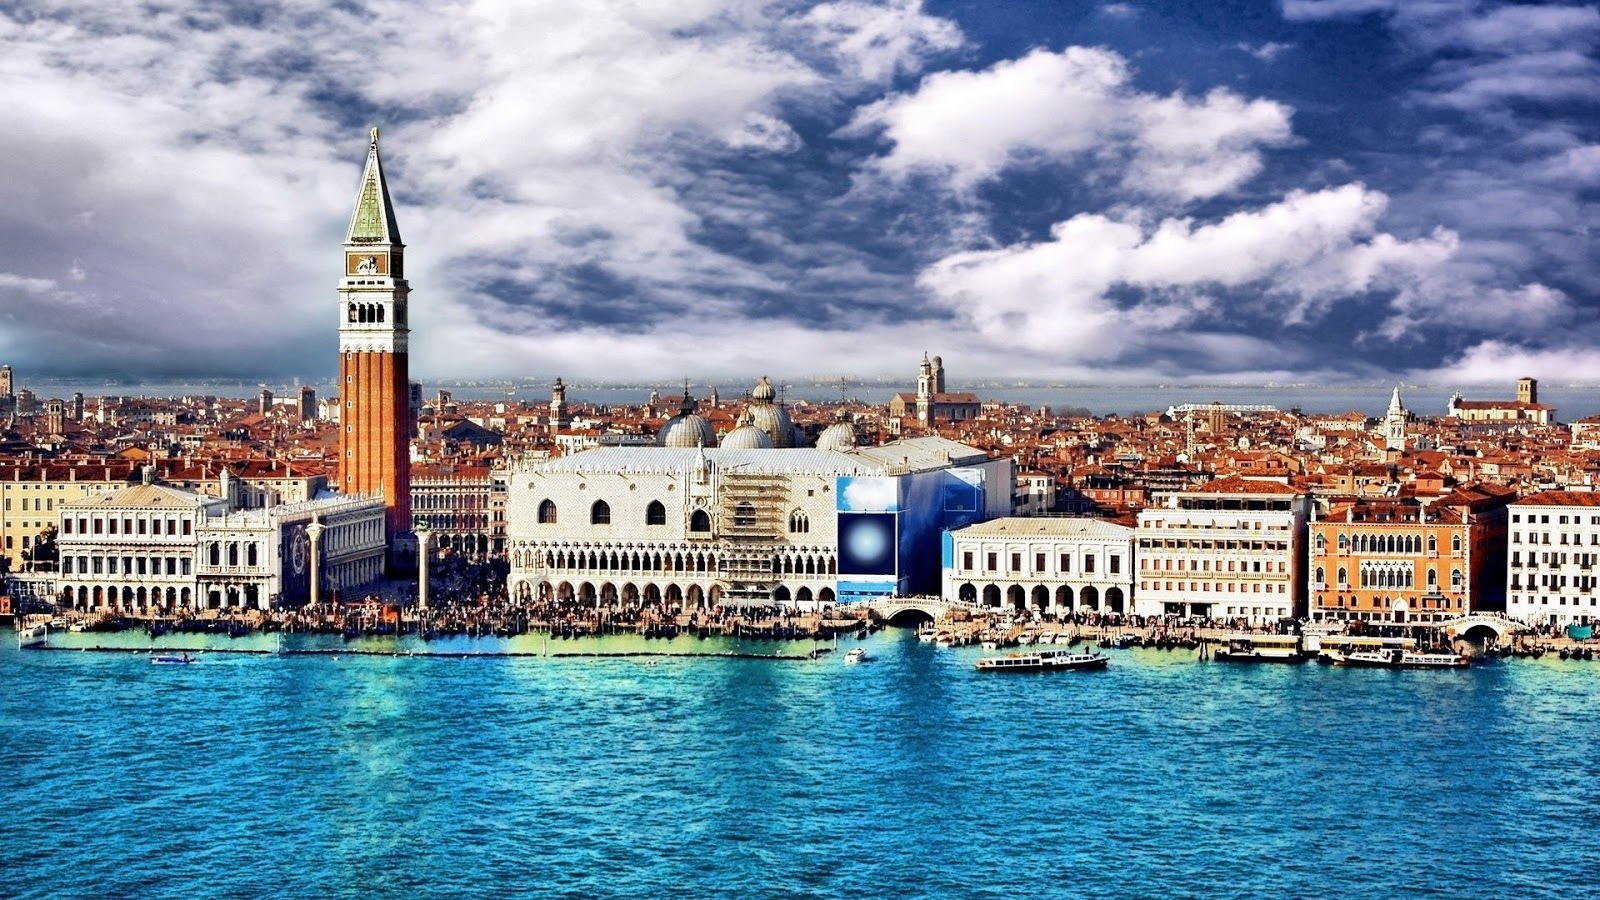 Student Travels: Venice, Italy